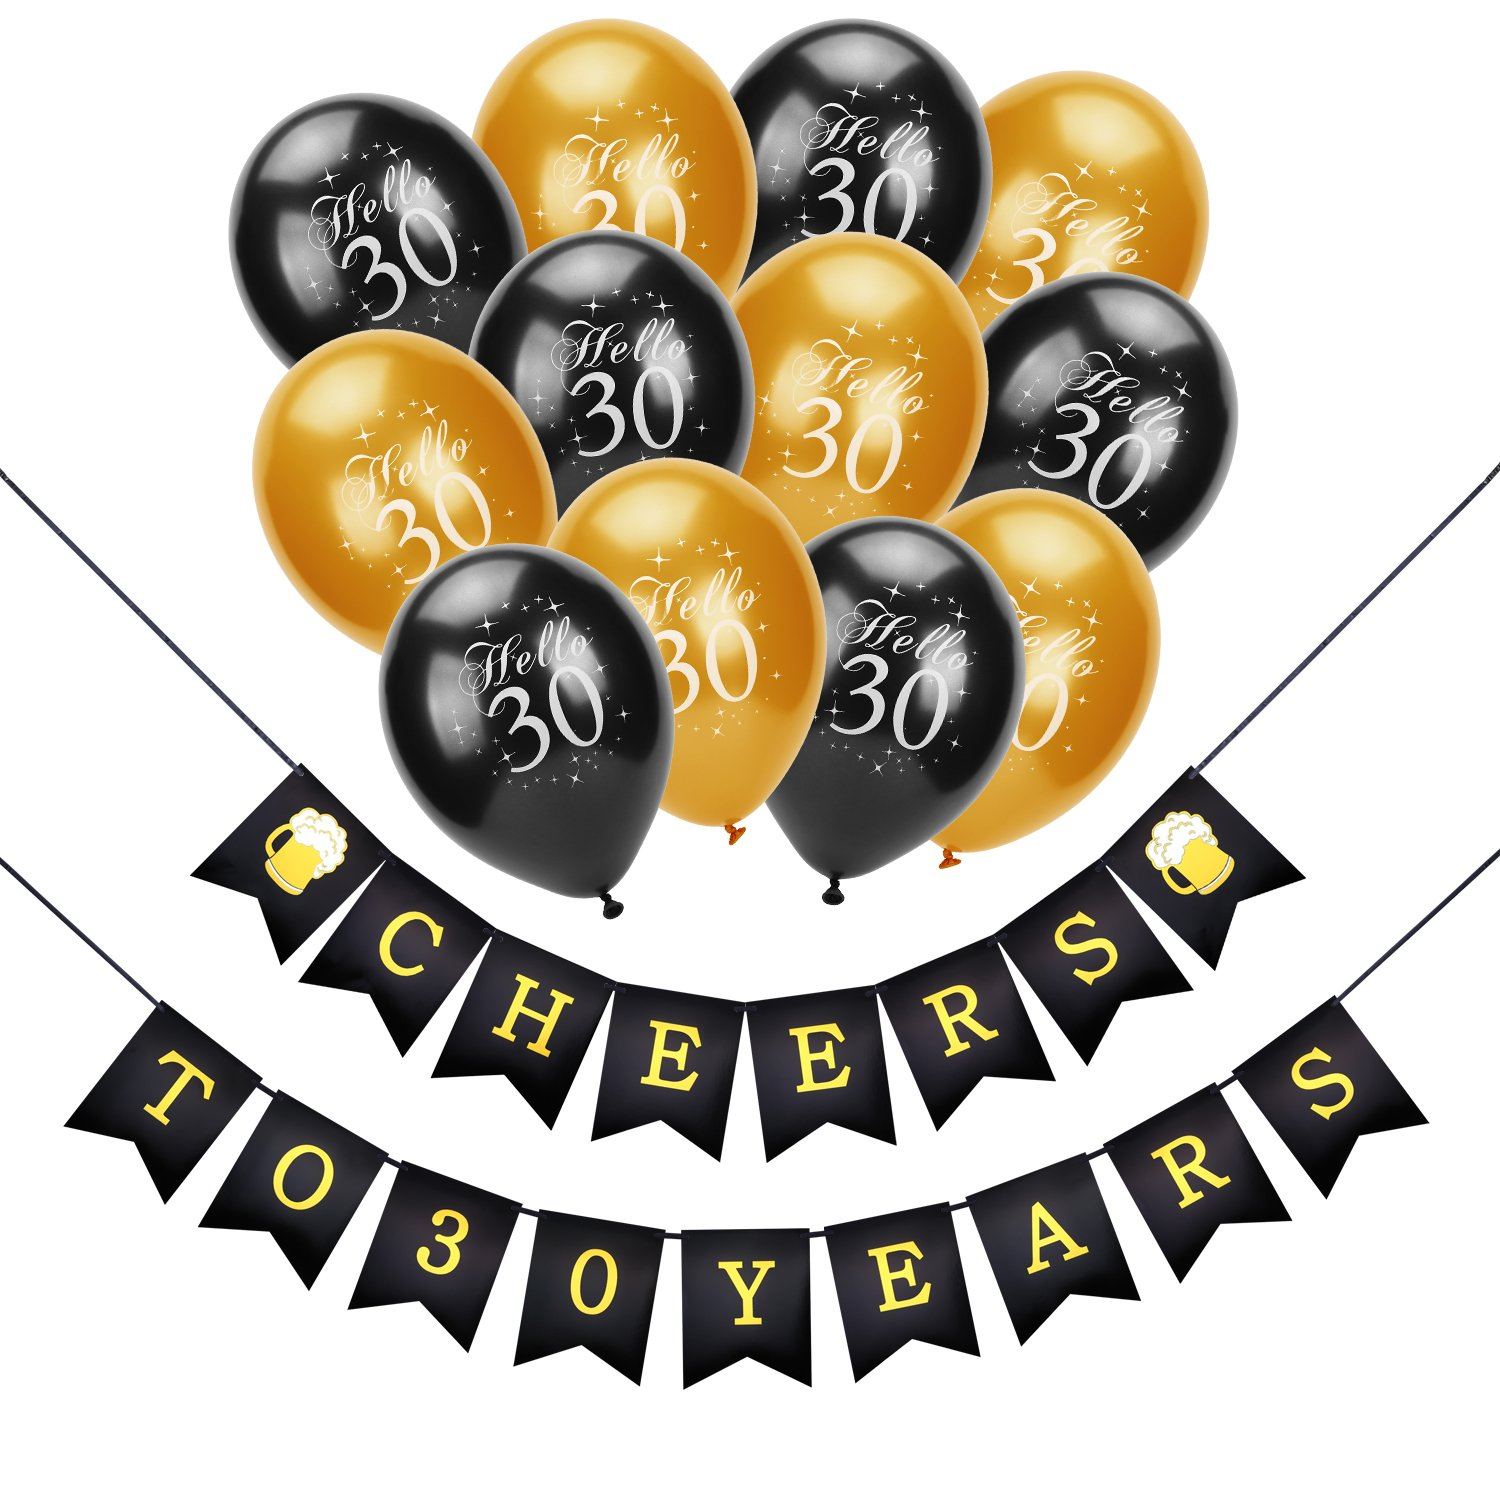 Konsait 30th Birthday Decoration Cheers To 30 BannerHello Balloons Black And Goldfor Man Women Celebration For